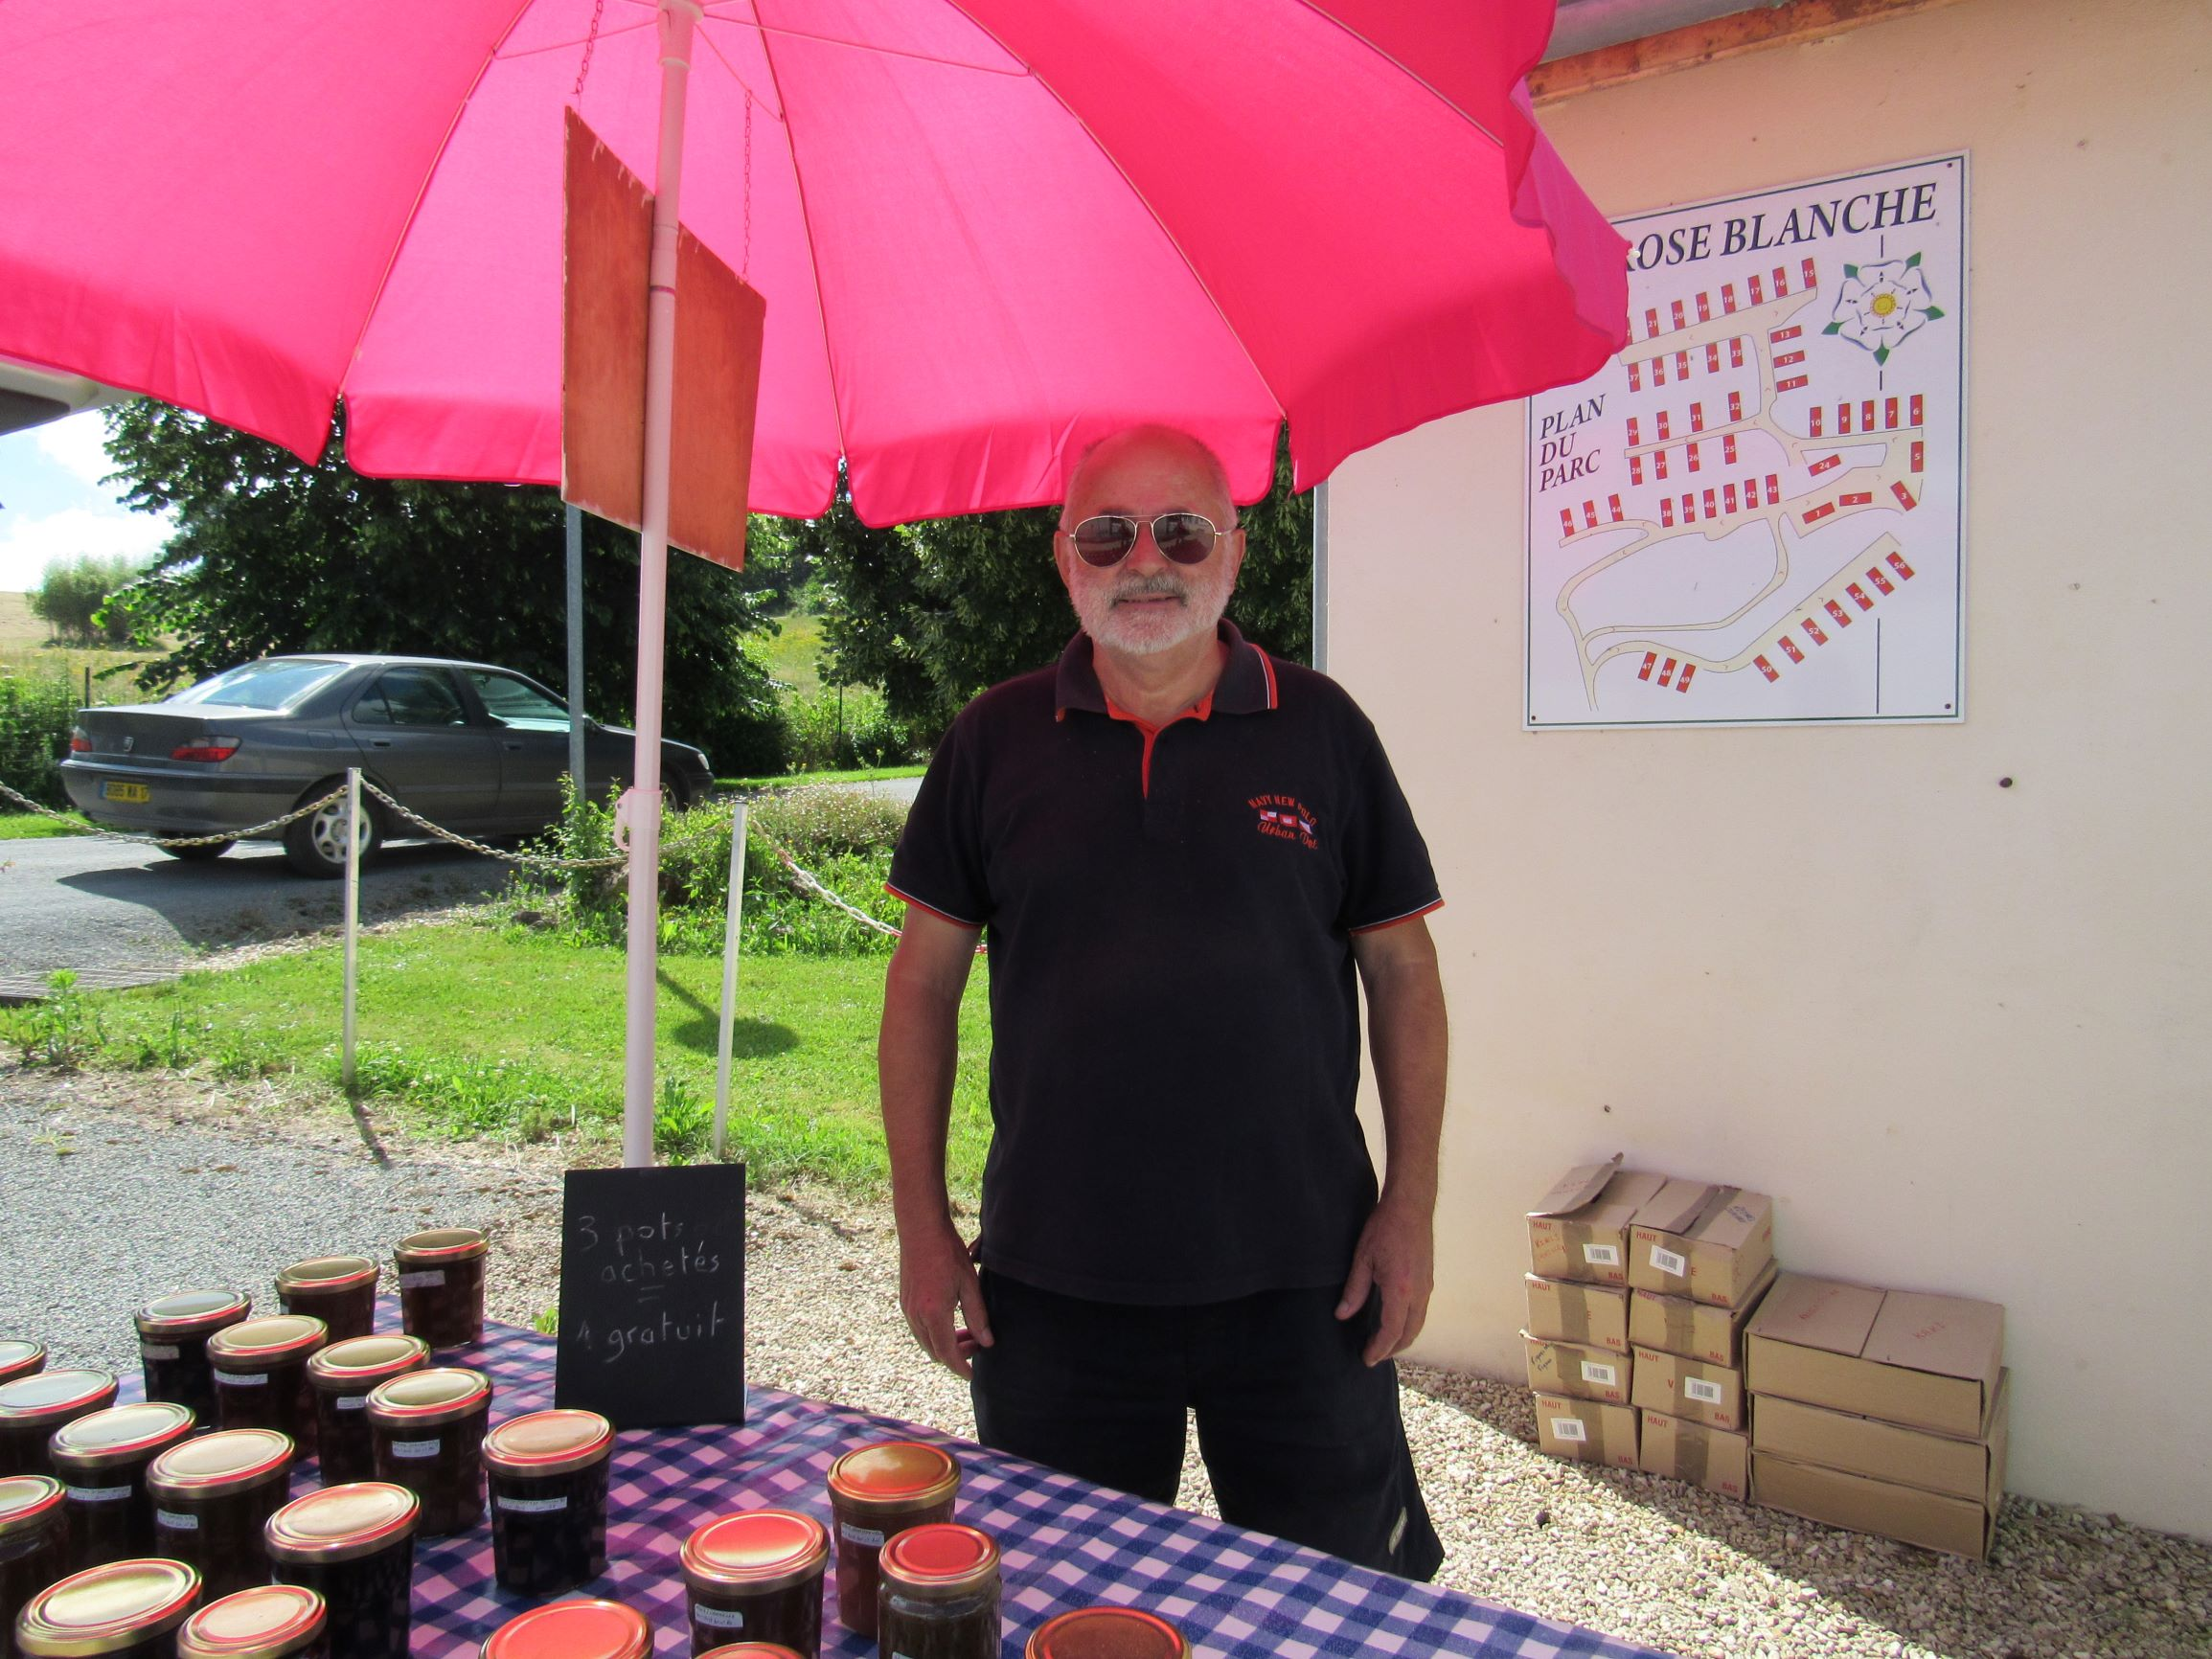 Jam Man, La Rose Blanche, on-Site Services, Home-made, jams, Confitures